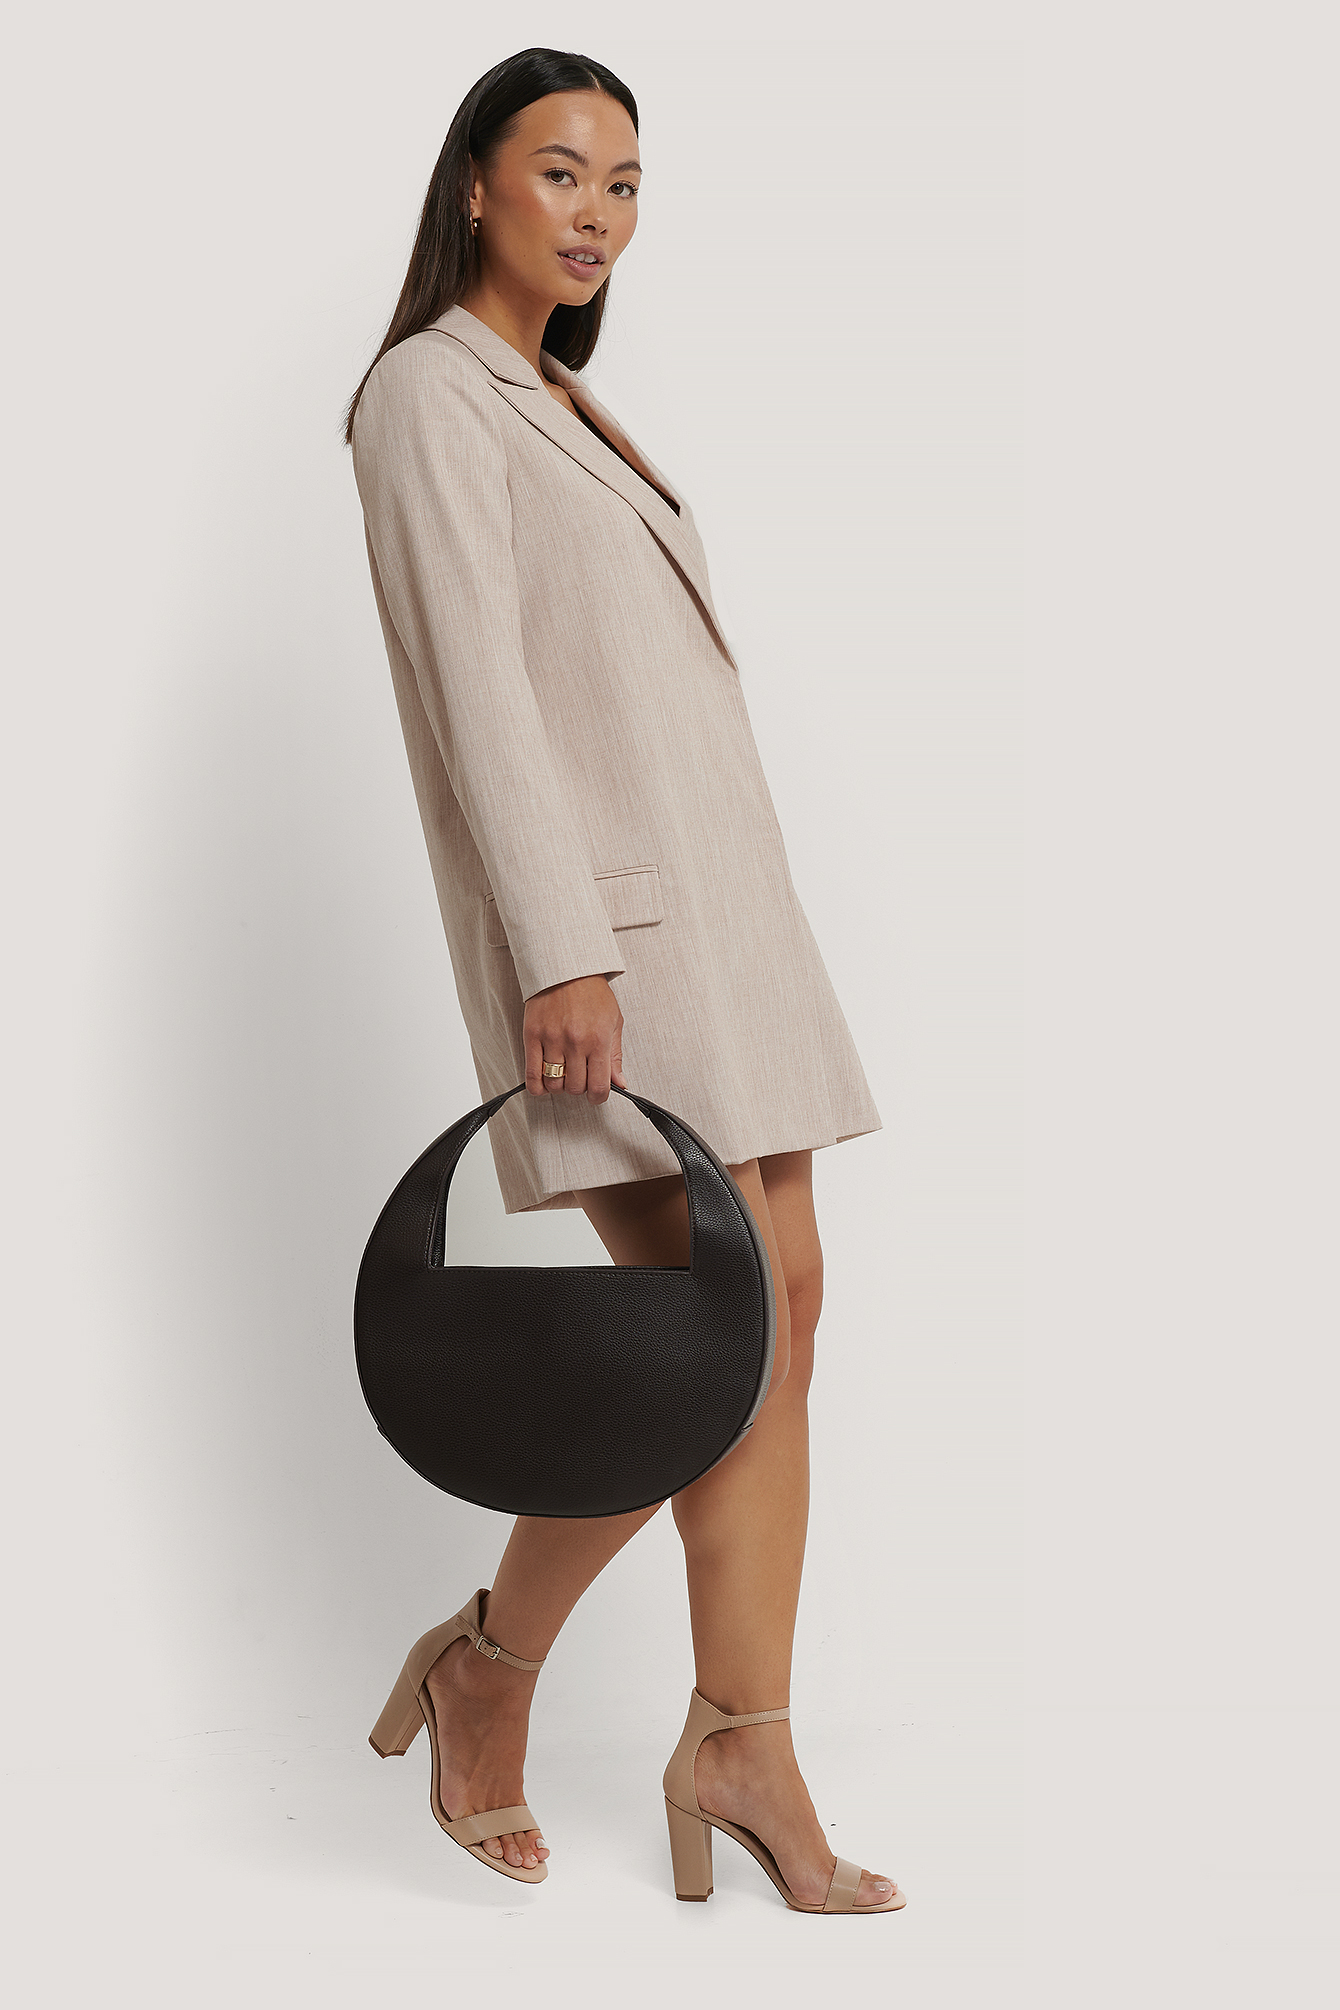 NA-KD Accessories Squared Handle Moon Bag - Brown